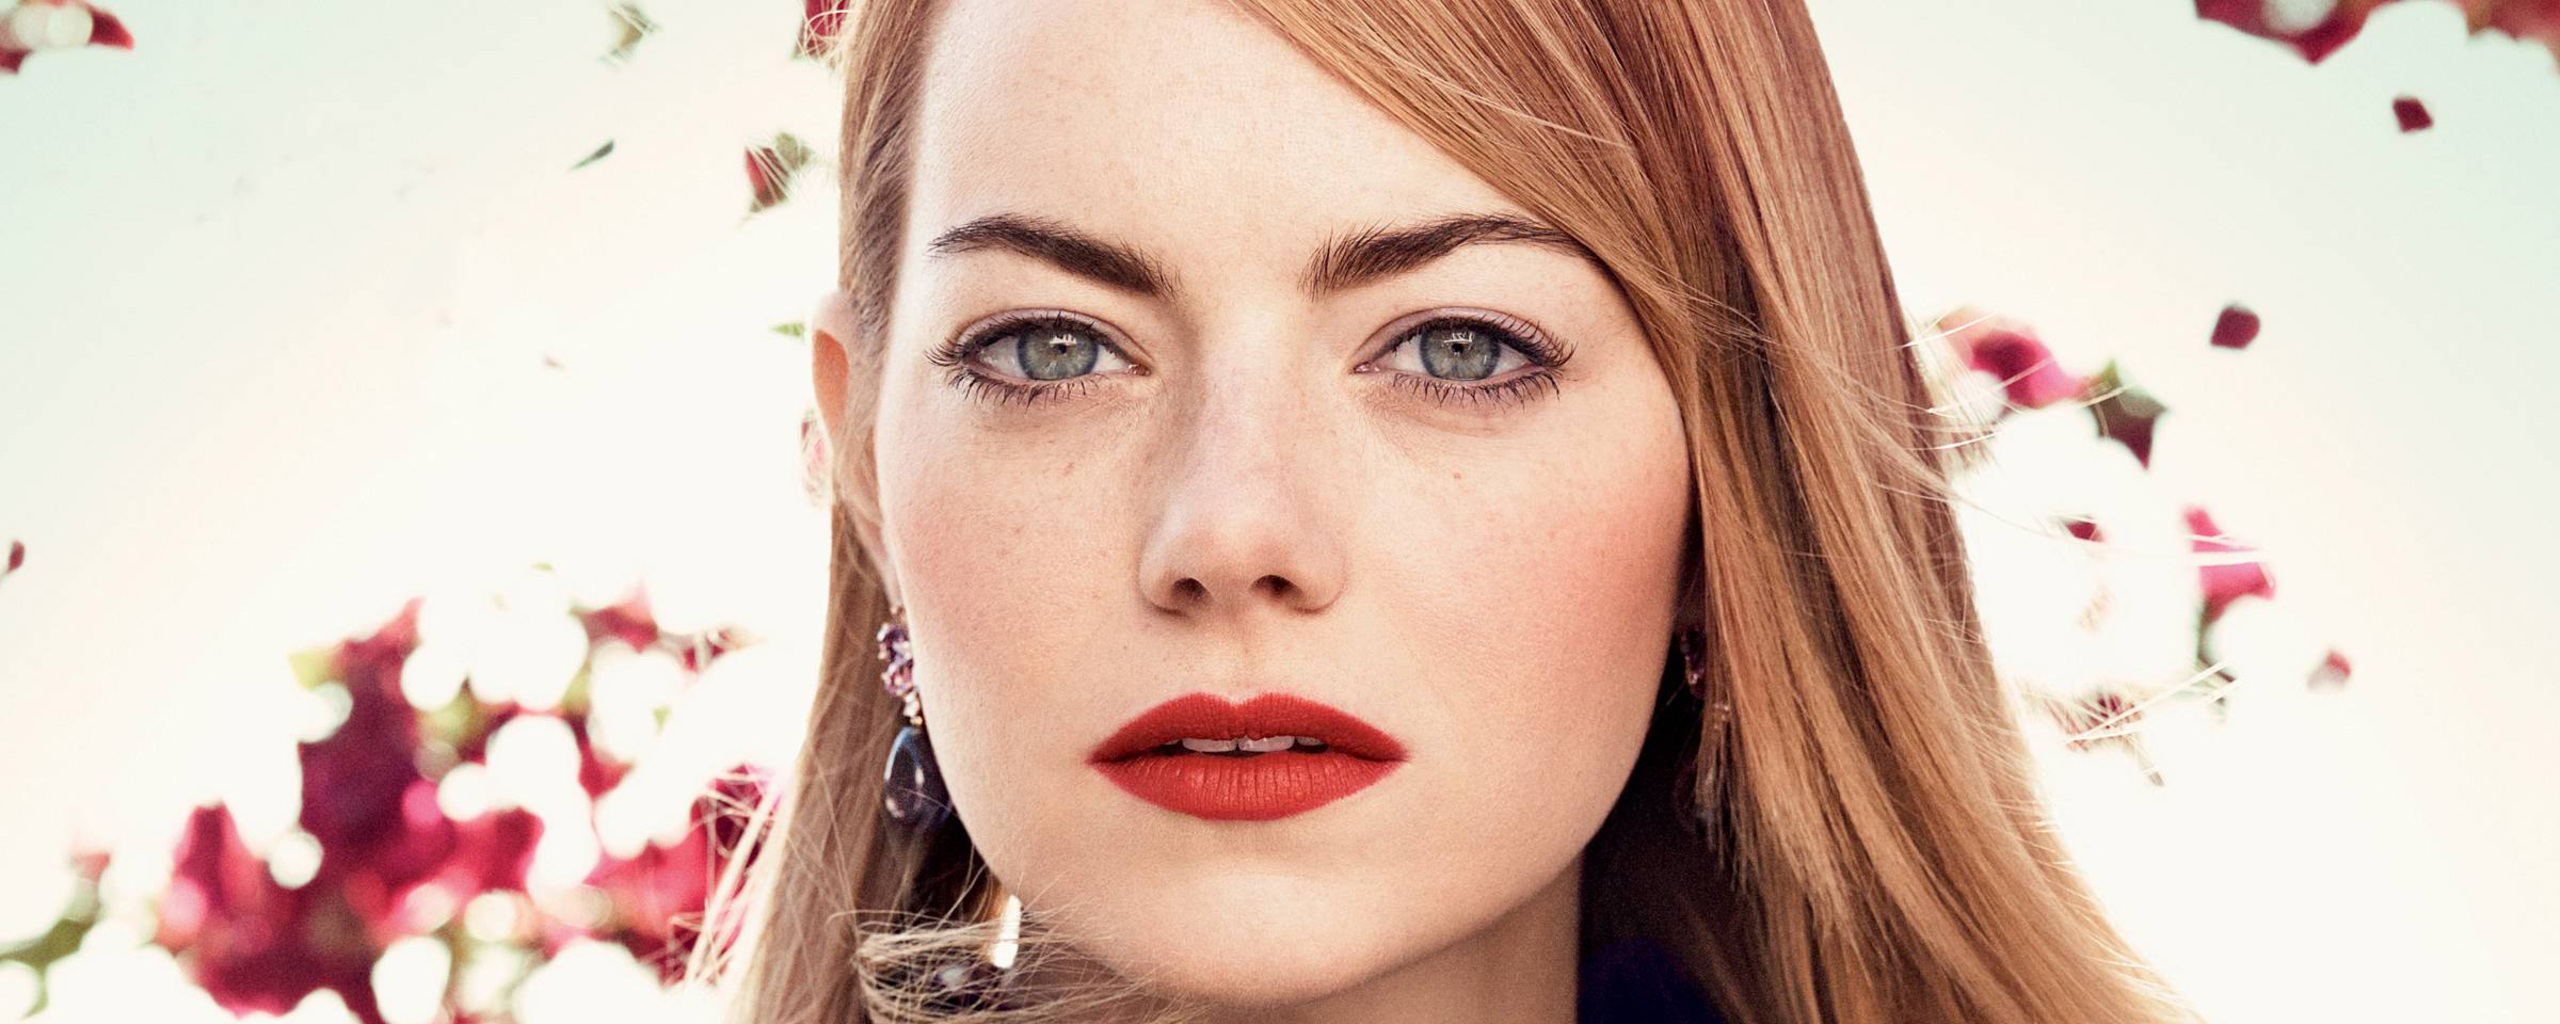 emma-stone-photshoot-for-vogue-ht.jpg